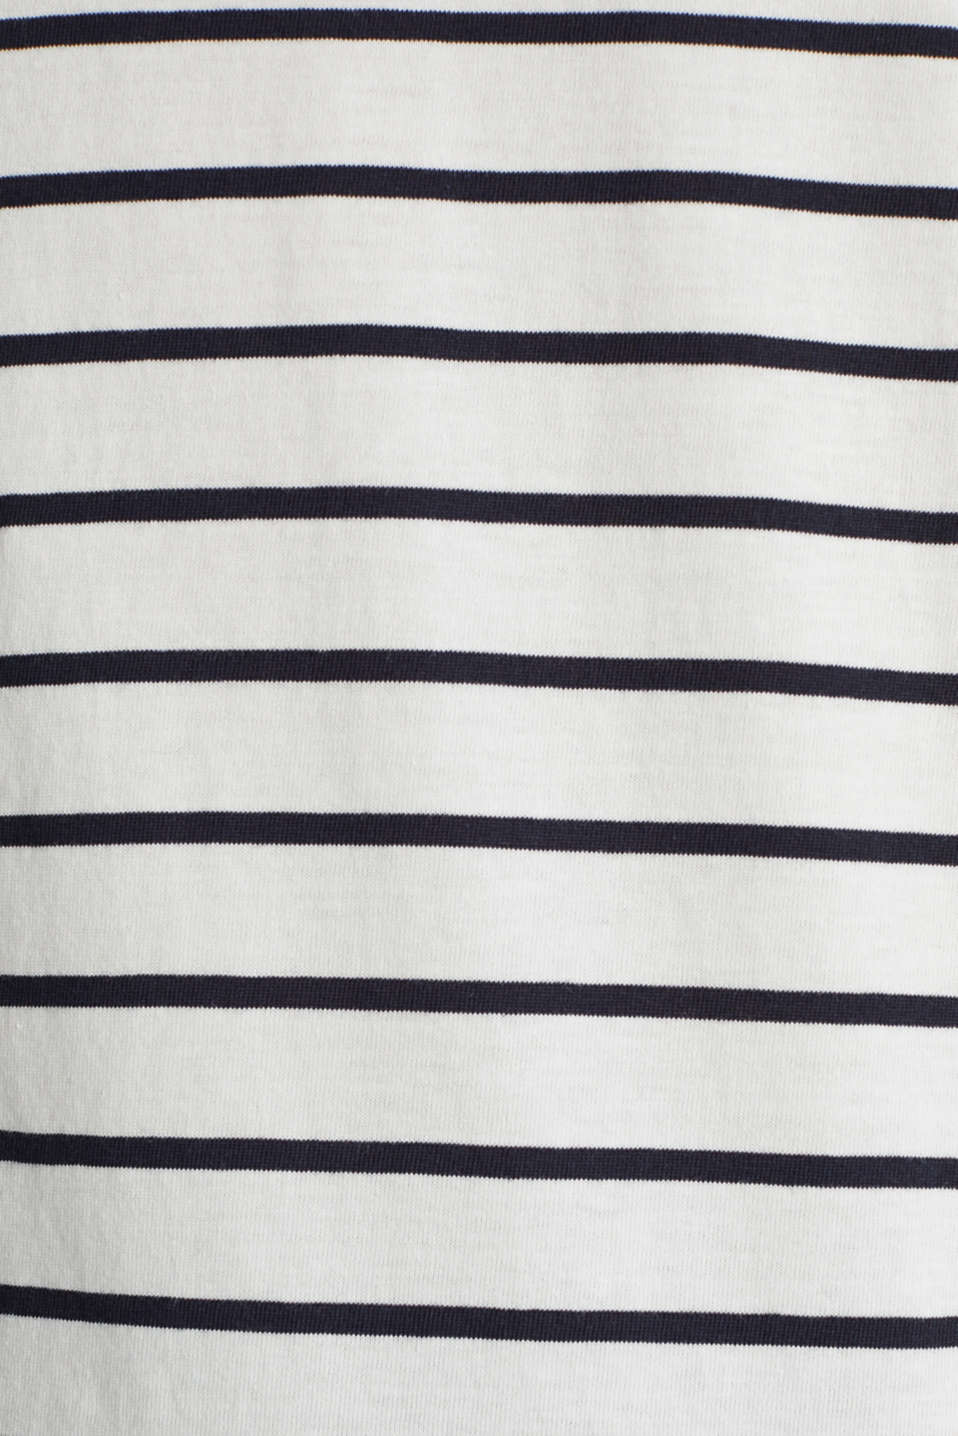 T-shirt with stripes, 100% cotton, OFF WHITE, detail image number 4